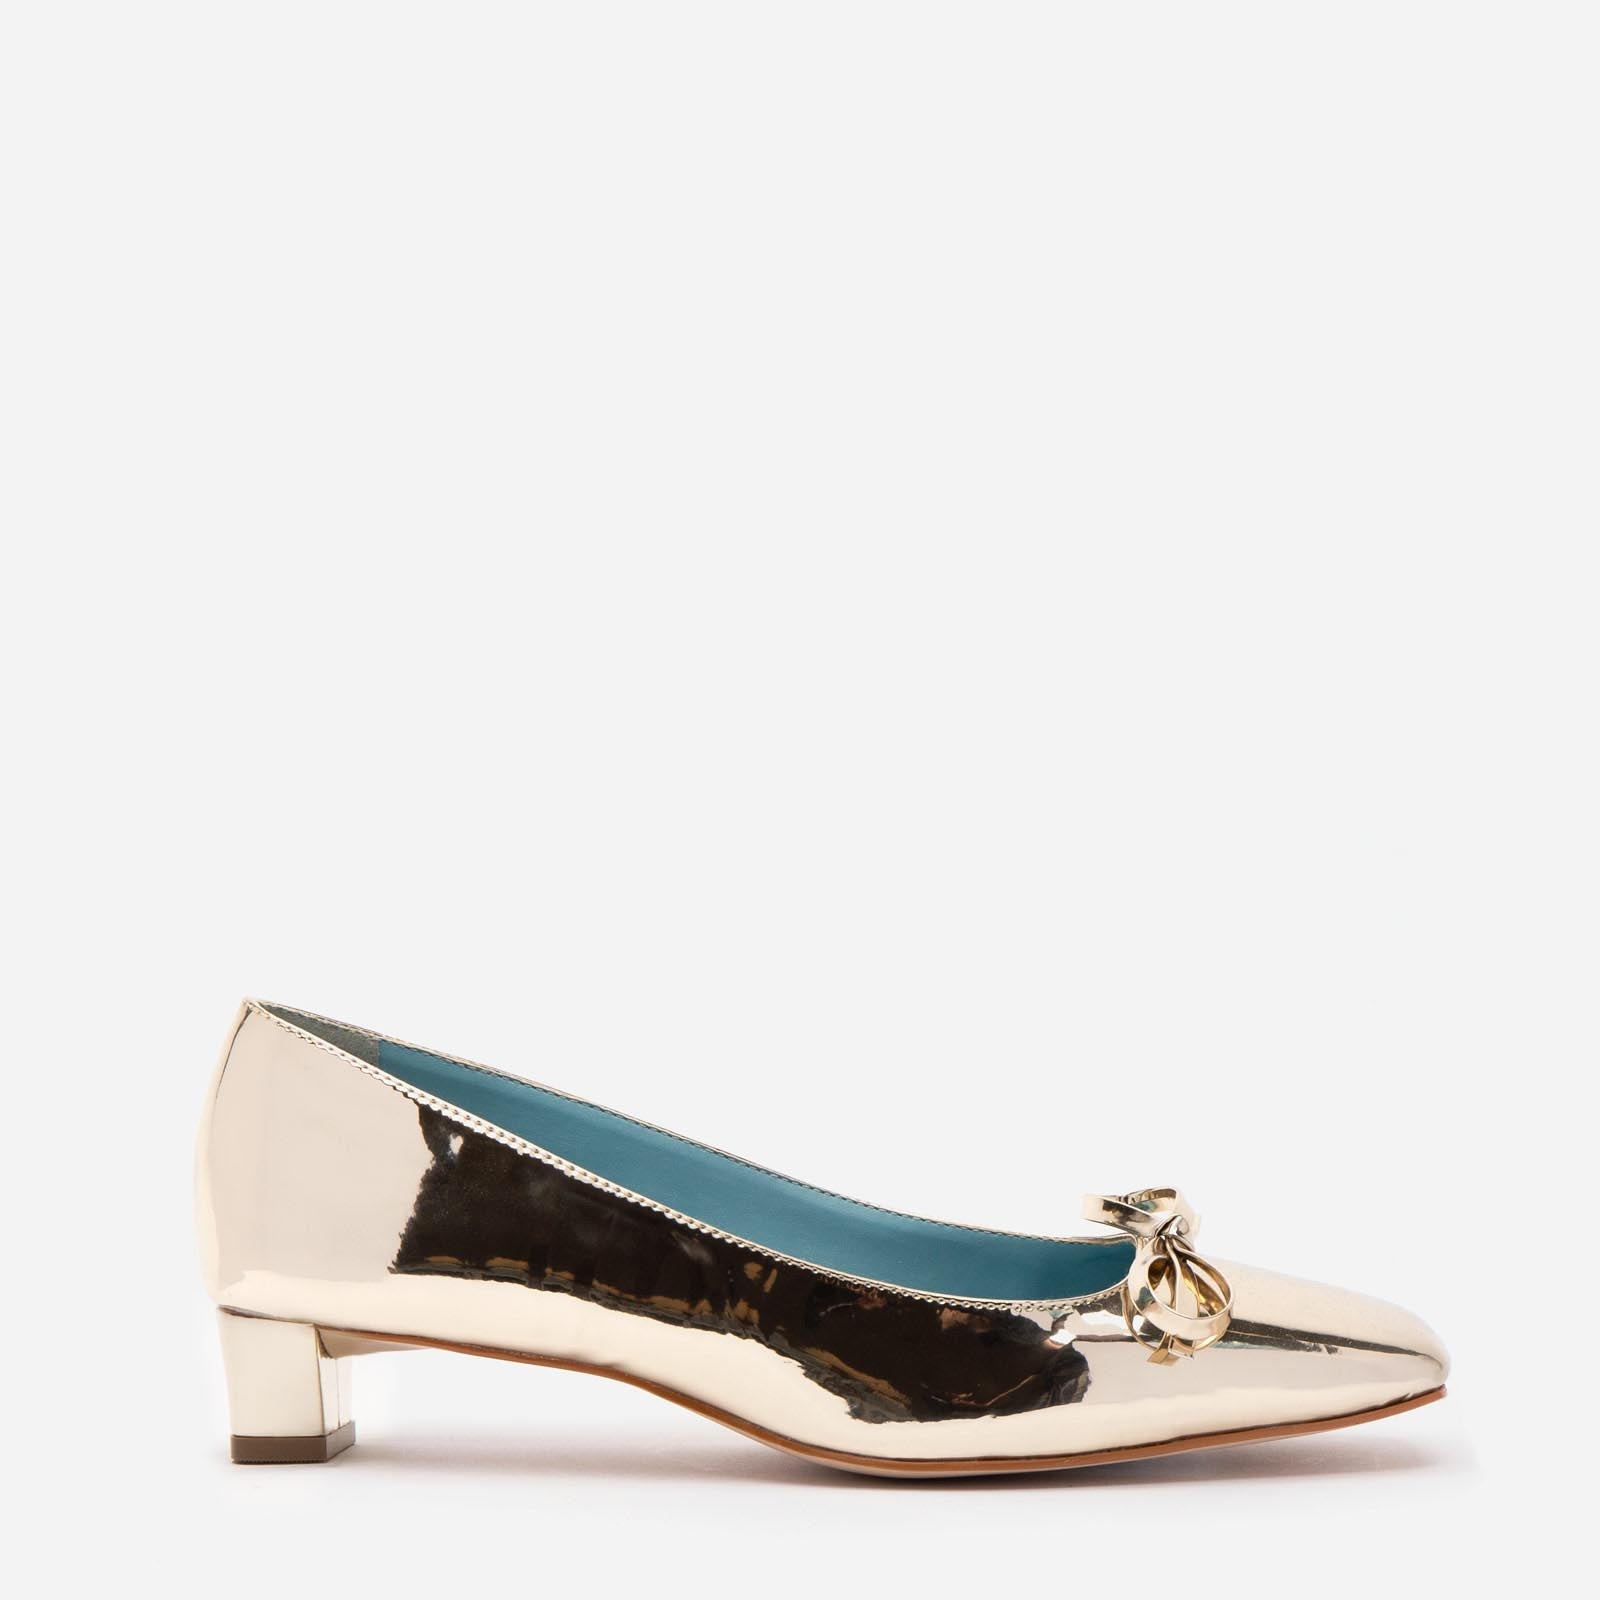 Mary Mini Block Heel Vegan Leather Platino - Frances Valentine